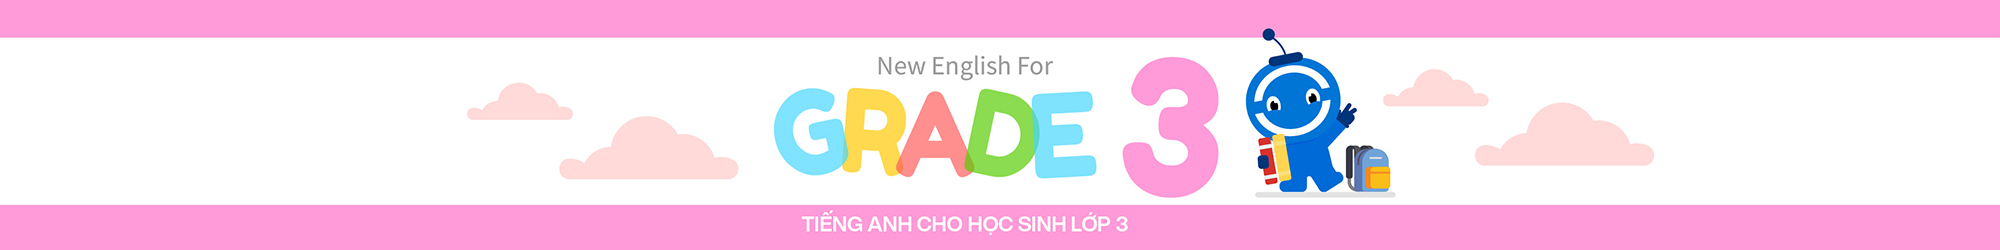 NEW ENGLISH FOR GRADE 3